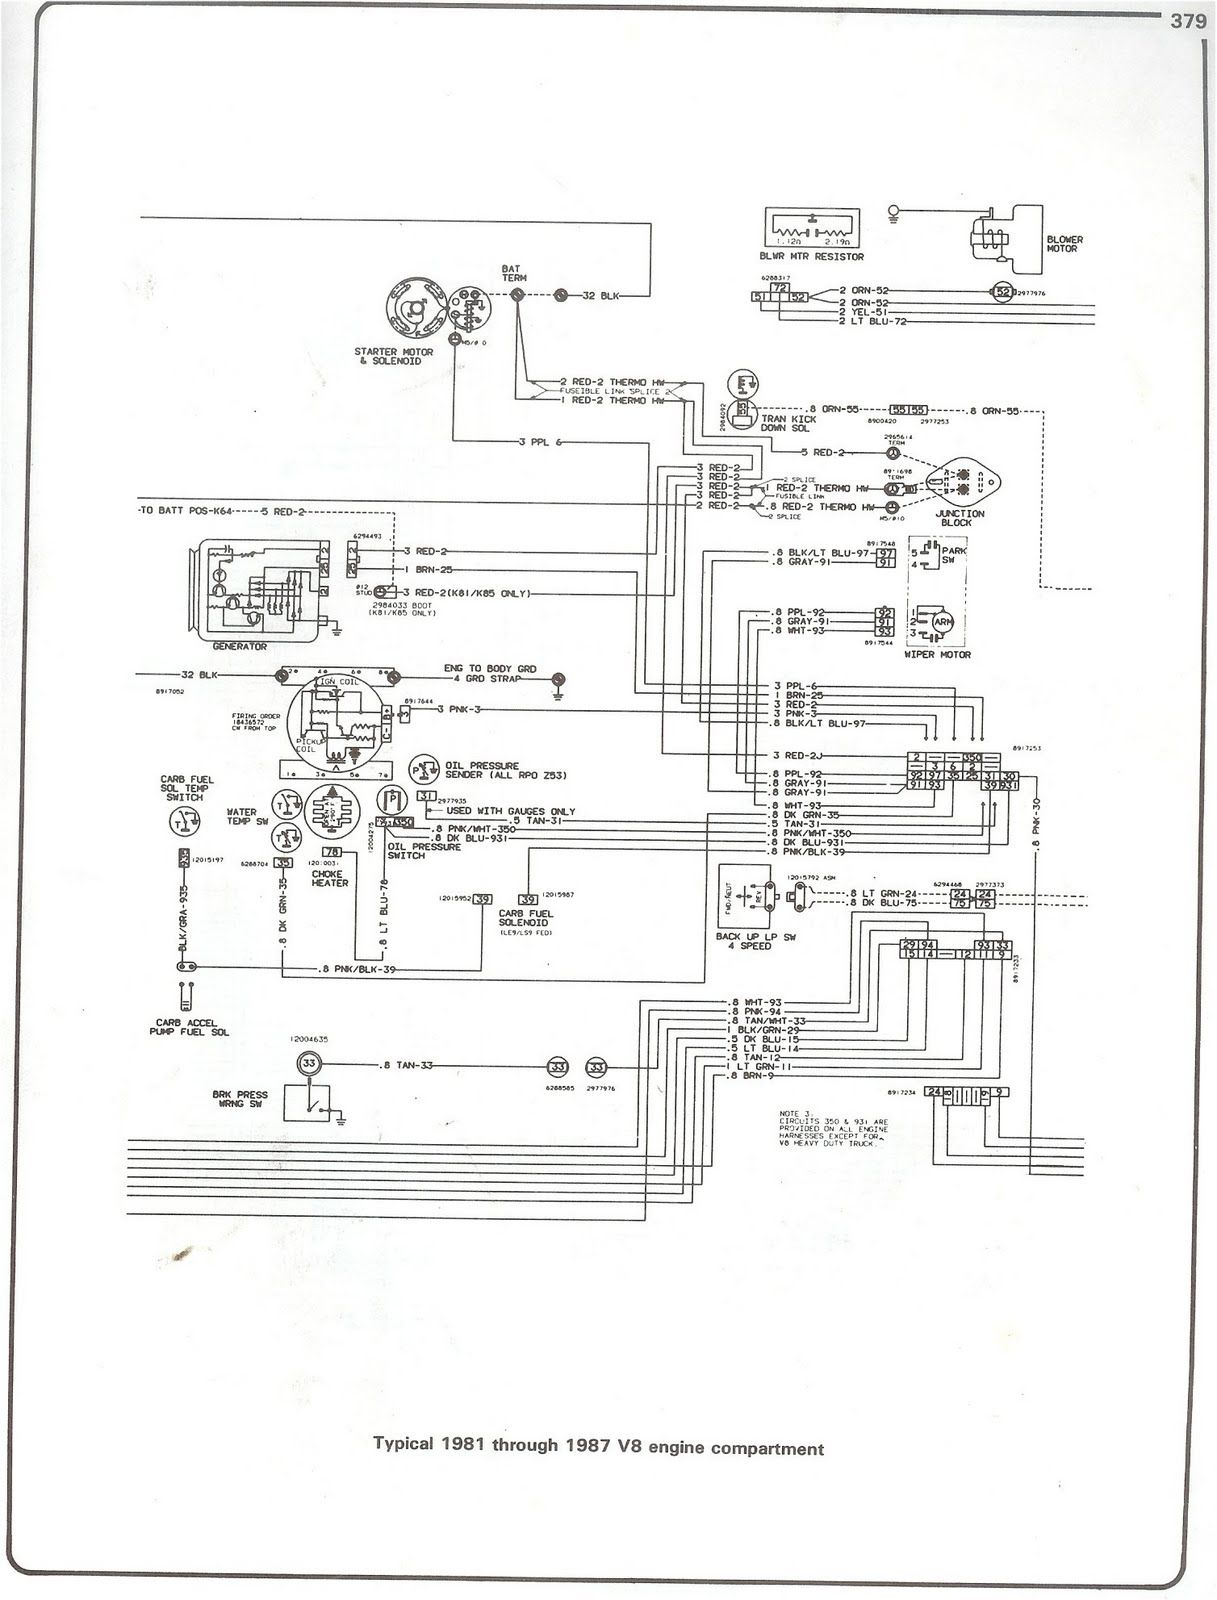 This is engine compartment wiring diagram for 1981 trough ... G Fuel Wiring Diagram Chevy Truck on